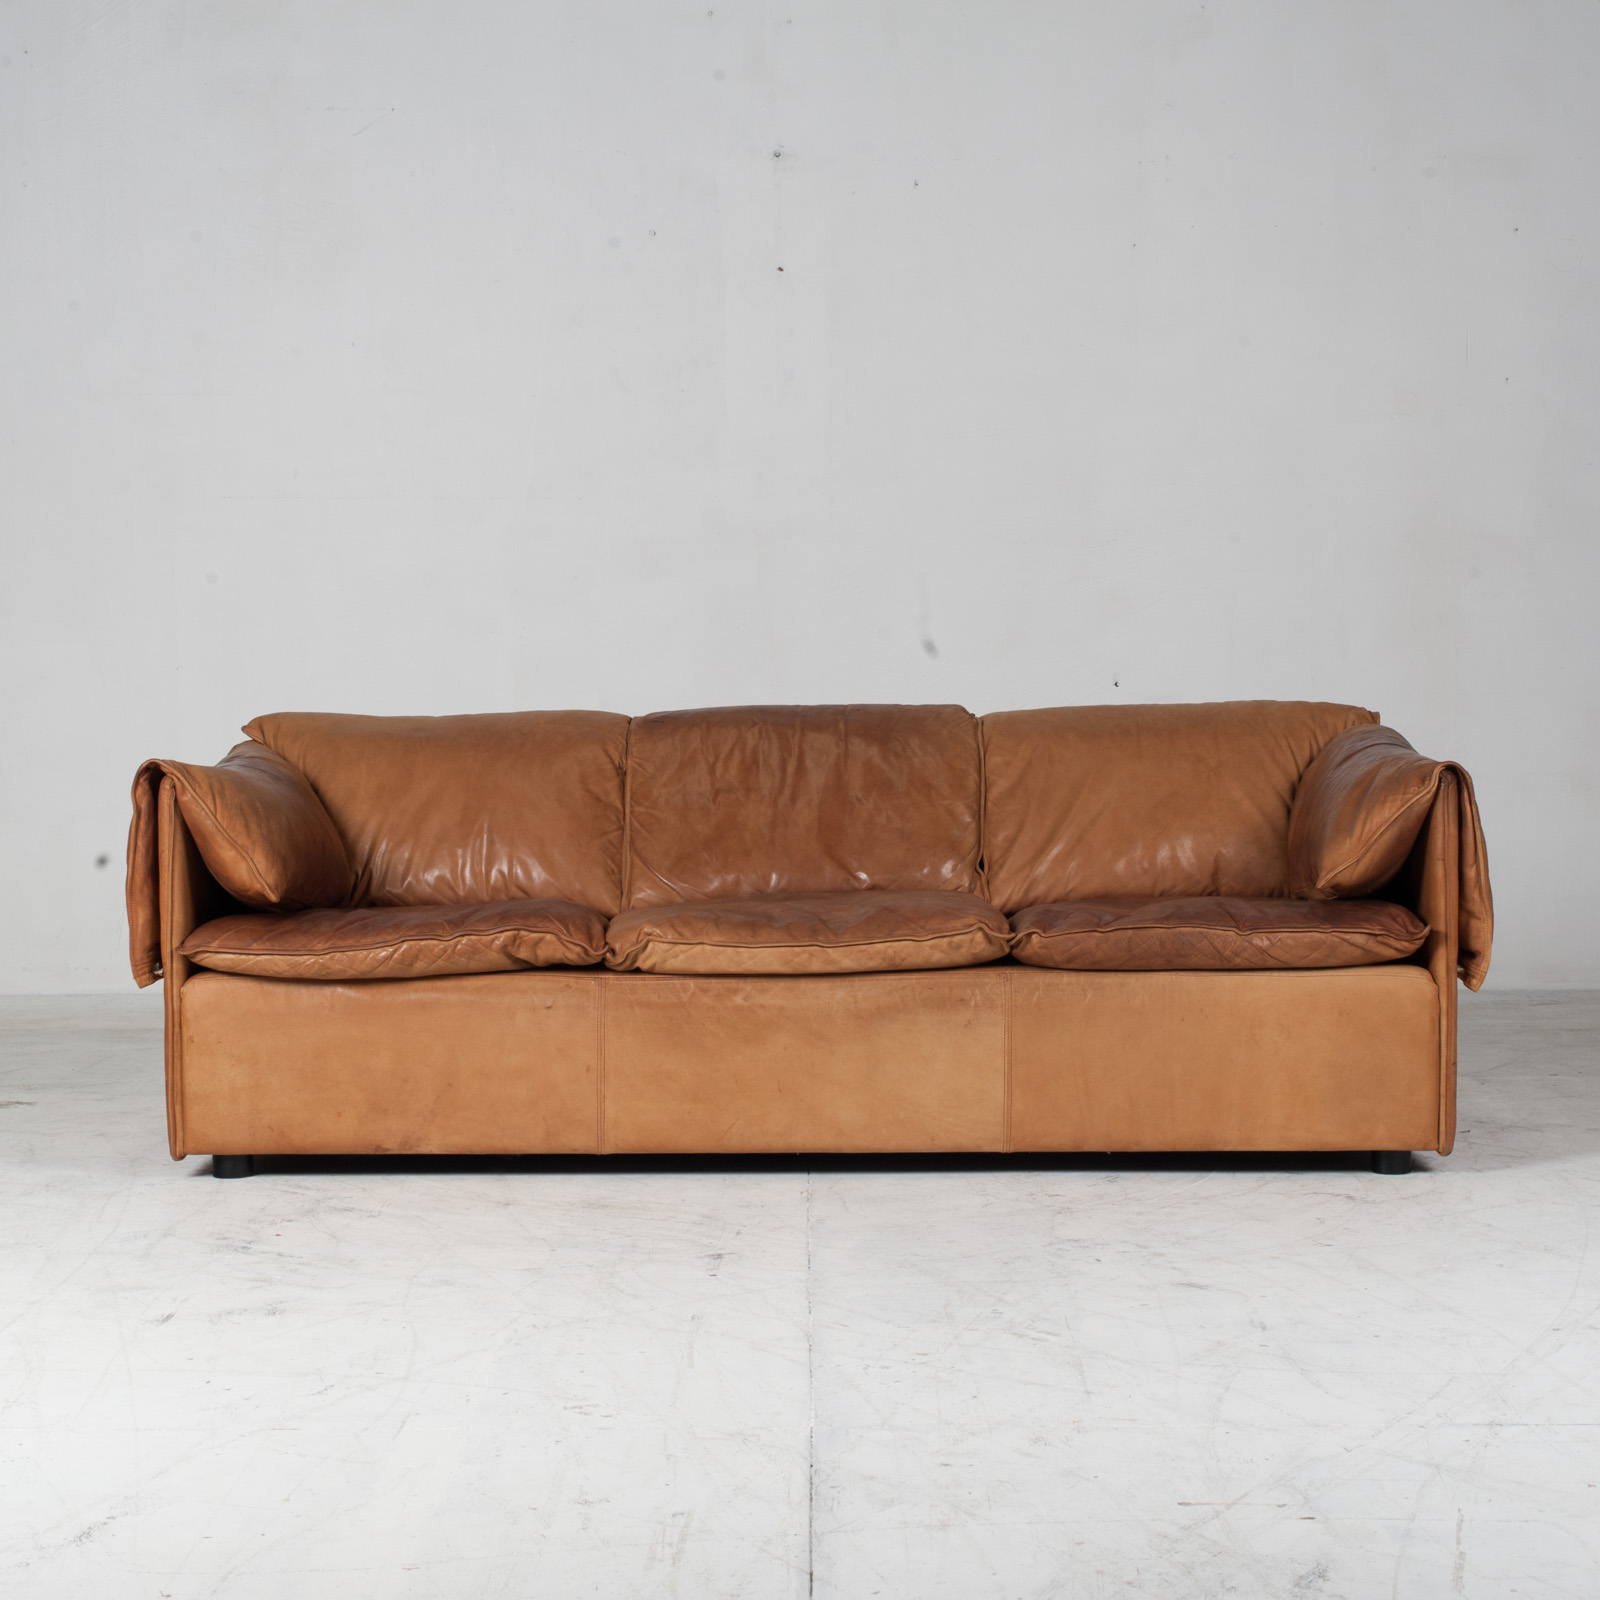 Model Lotus 3 Seat Sofa By Eilersen In Tan Leather 1970s Denmark 08